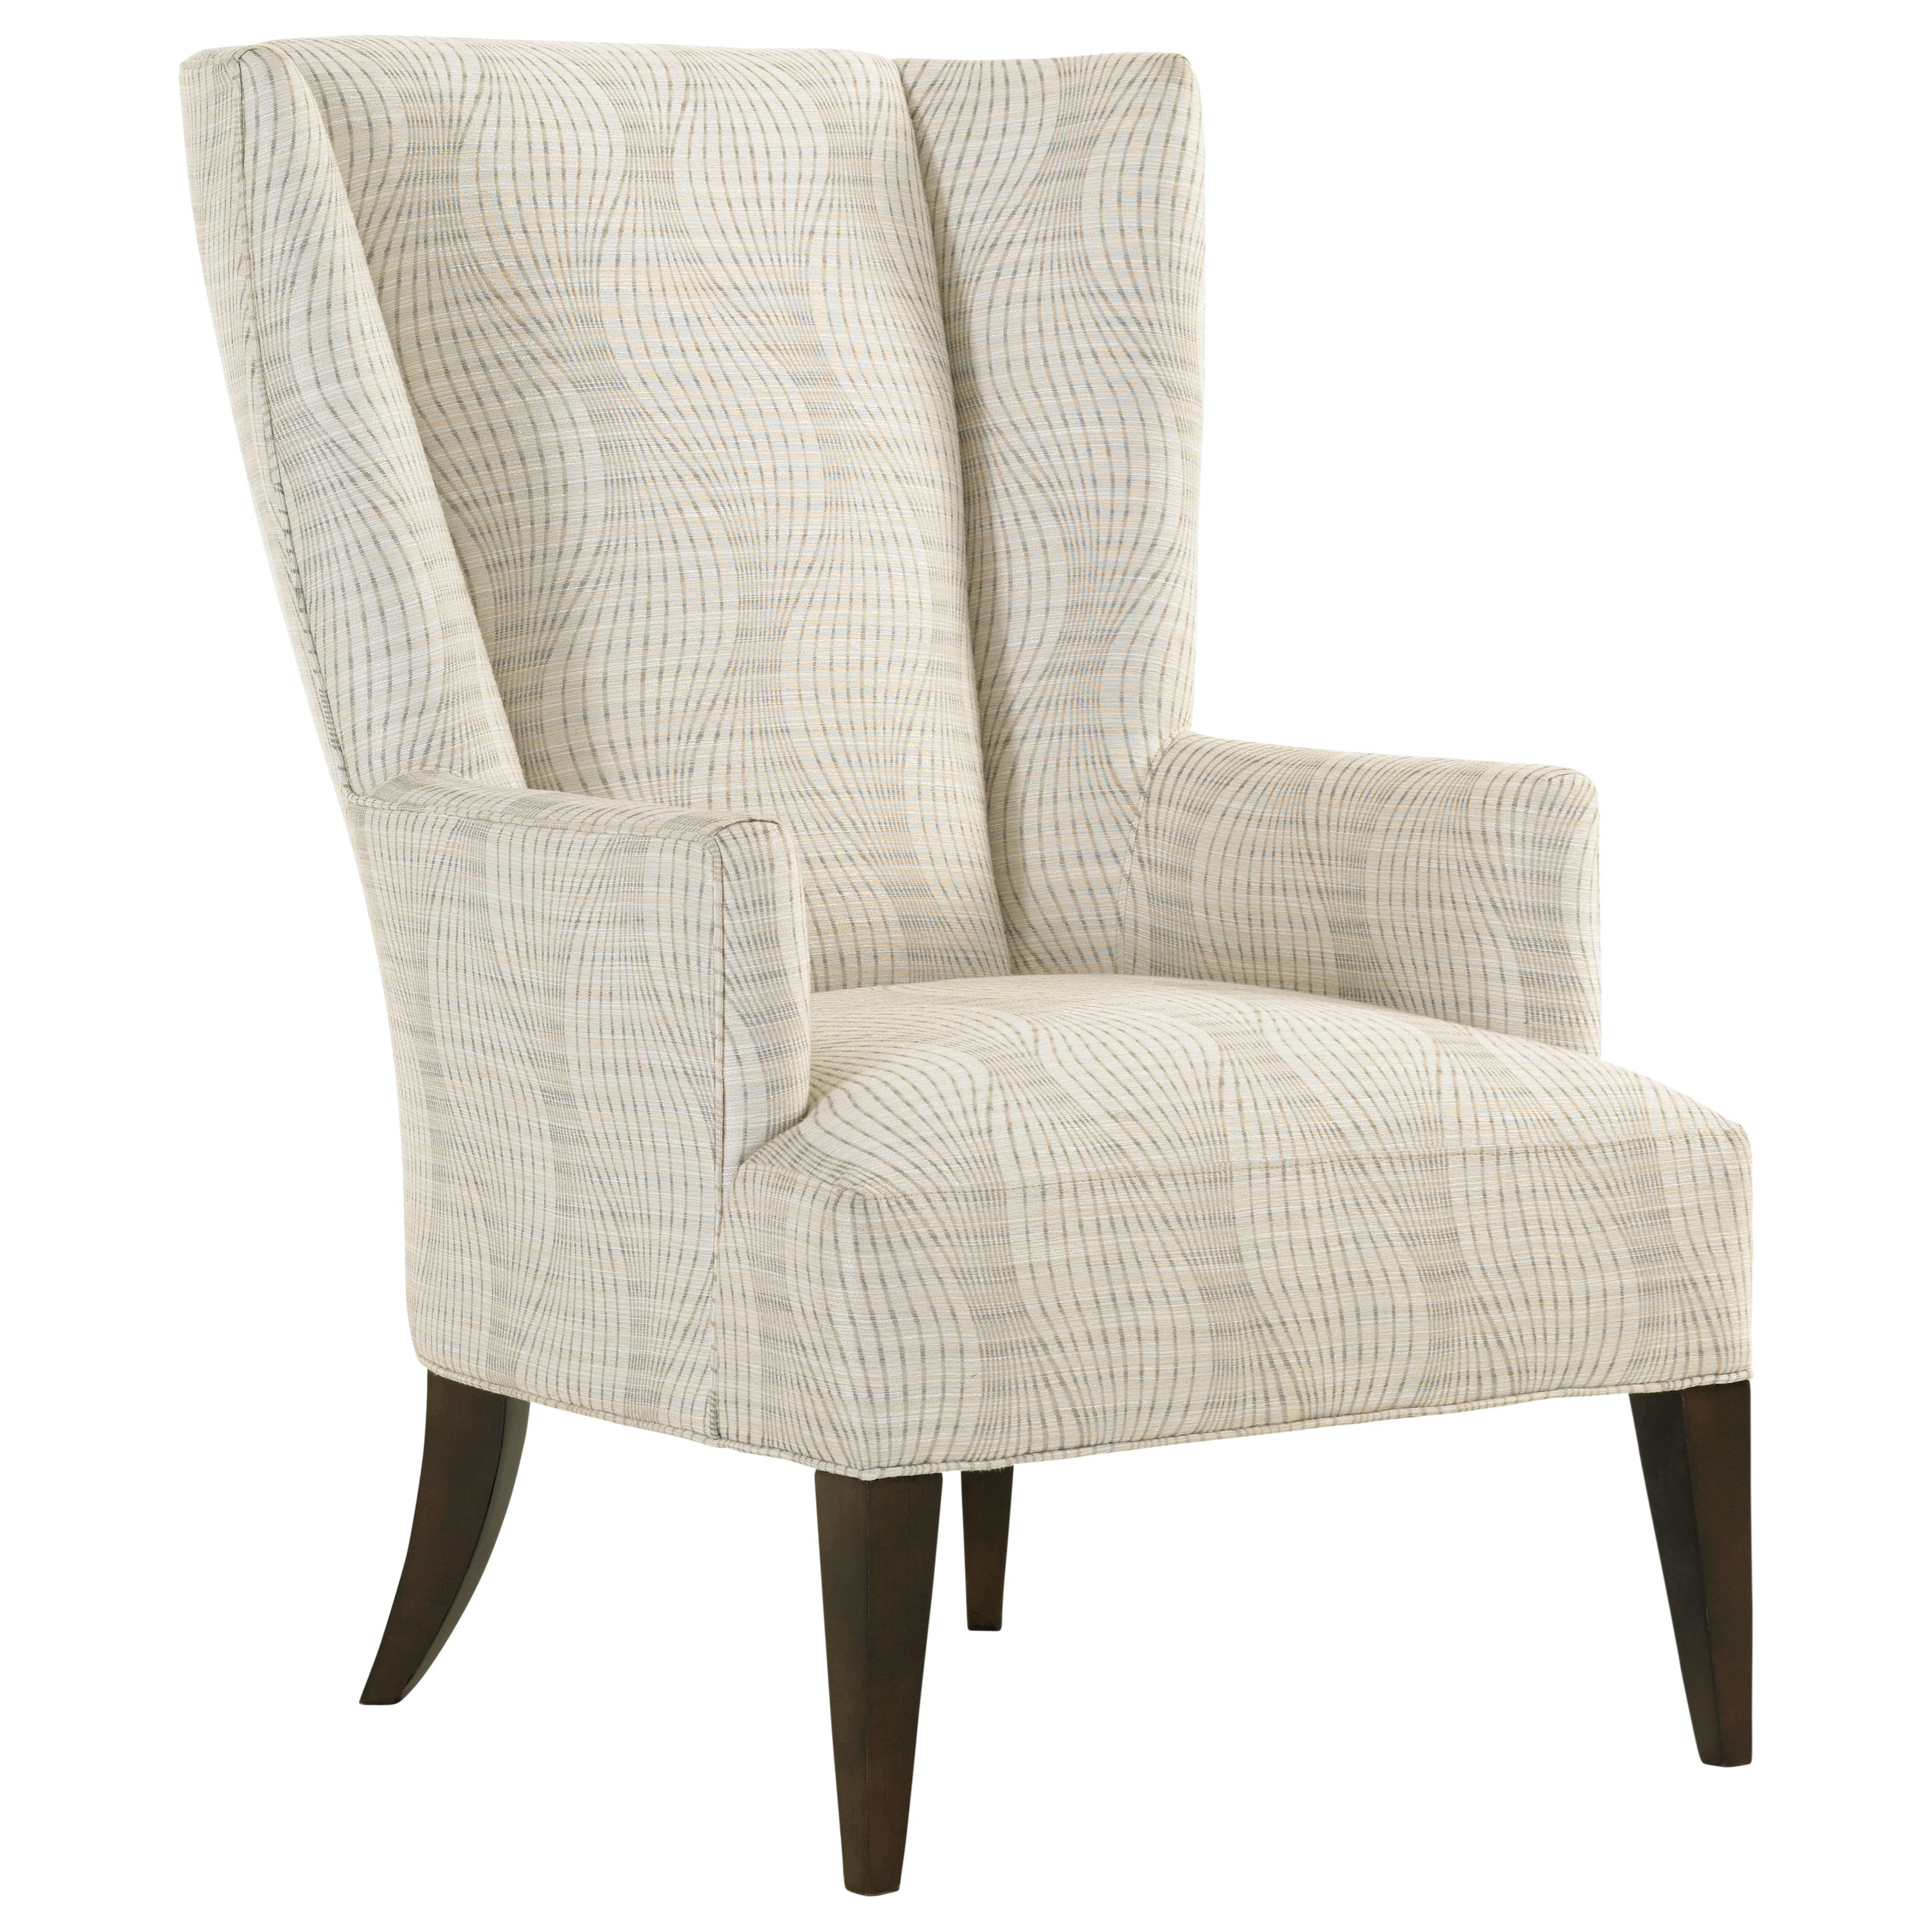 MacArthur Park Brockton Wing Chair by Lexington at Baer's Furniture